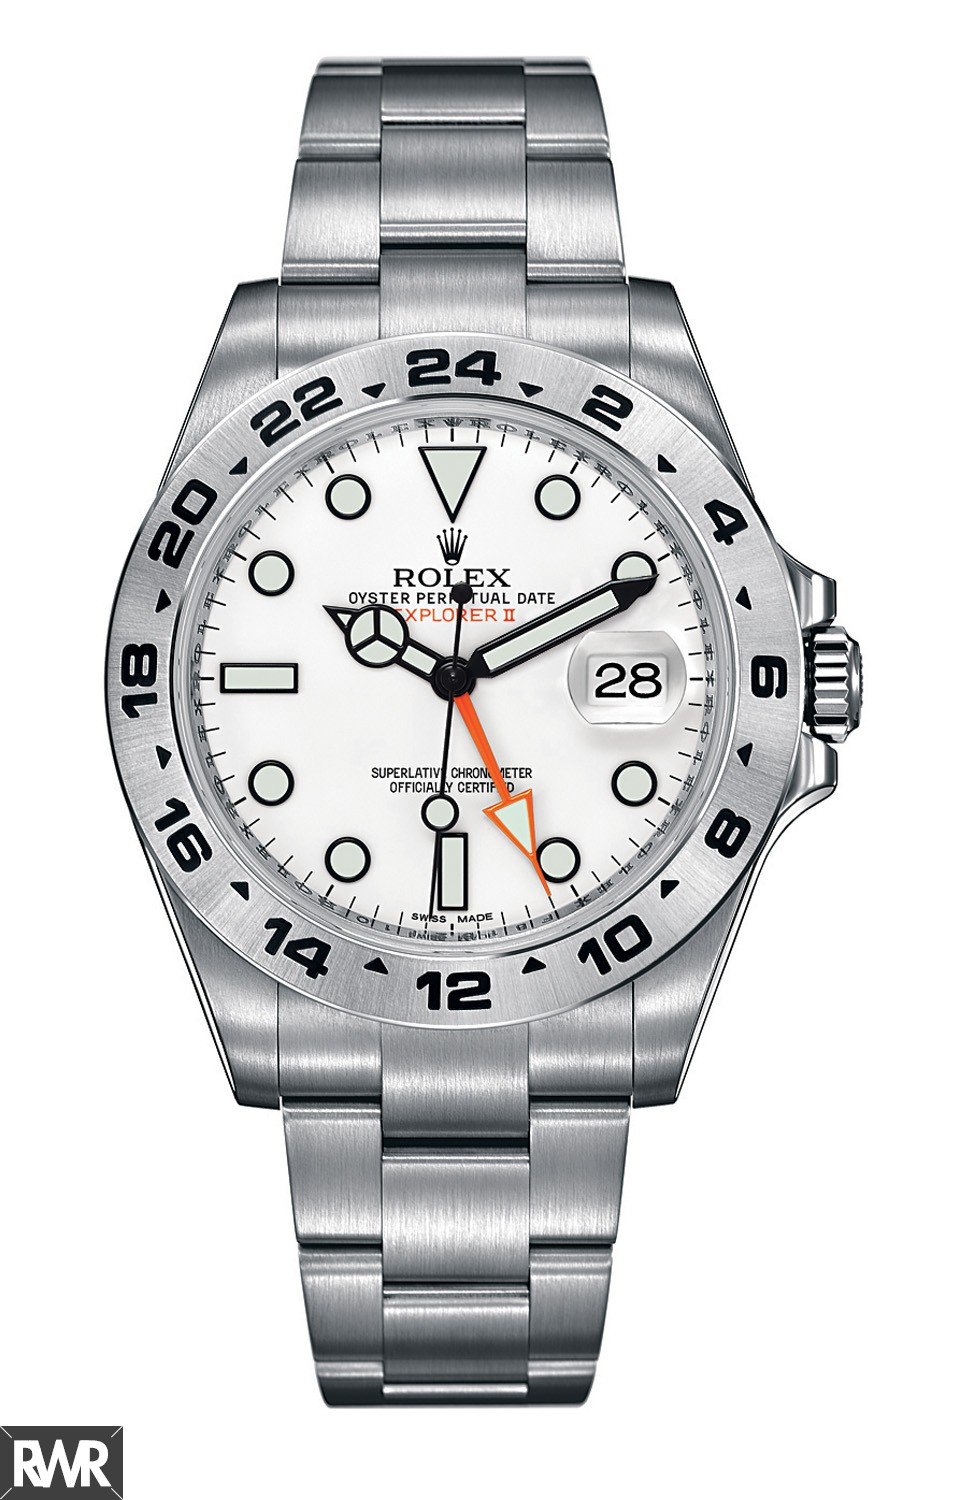 Rolex Oyster Perpetual Explorer II 216570–77210 White Dial